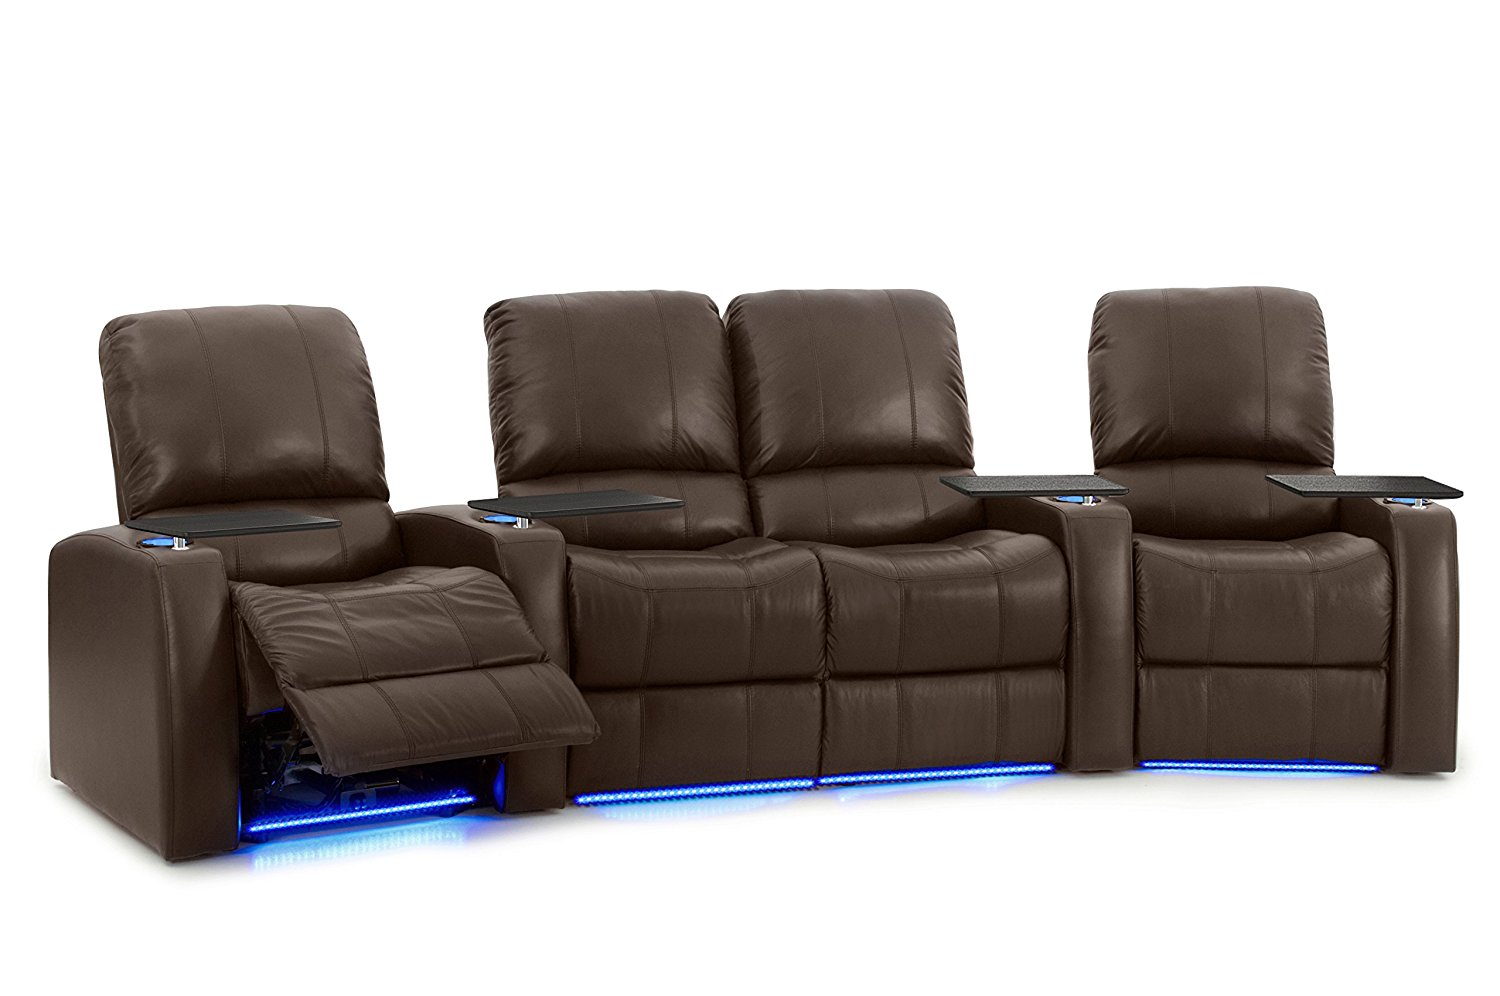 Octane Seating Octane Blaze XL900 Seats Curved with Middle Loveseat/Power Recline/Brown Premium Leather Home Theater Seating (Row of 4) Row of 4